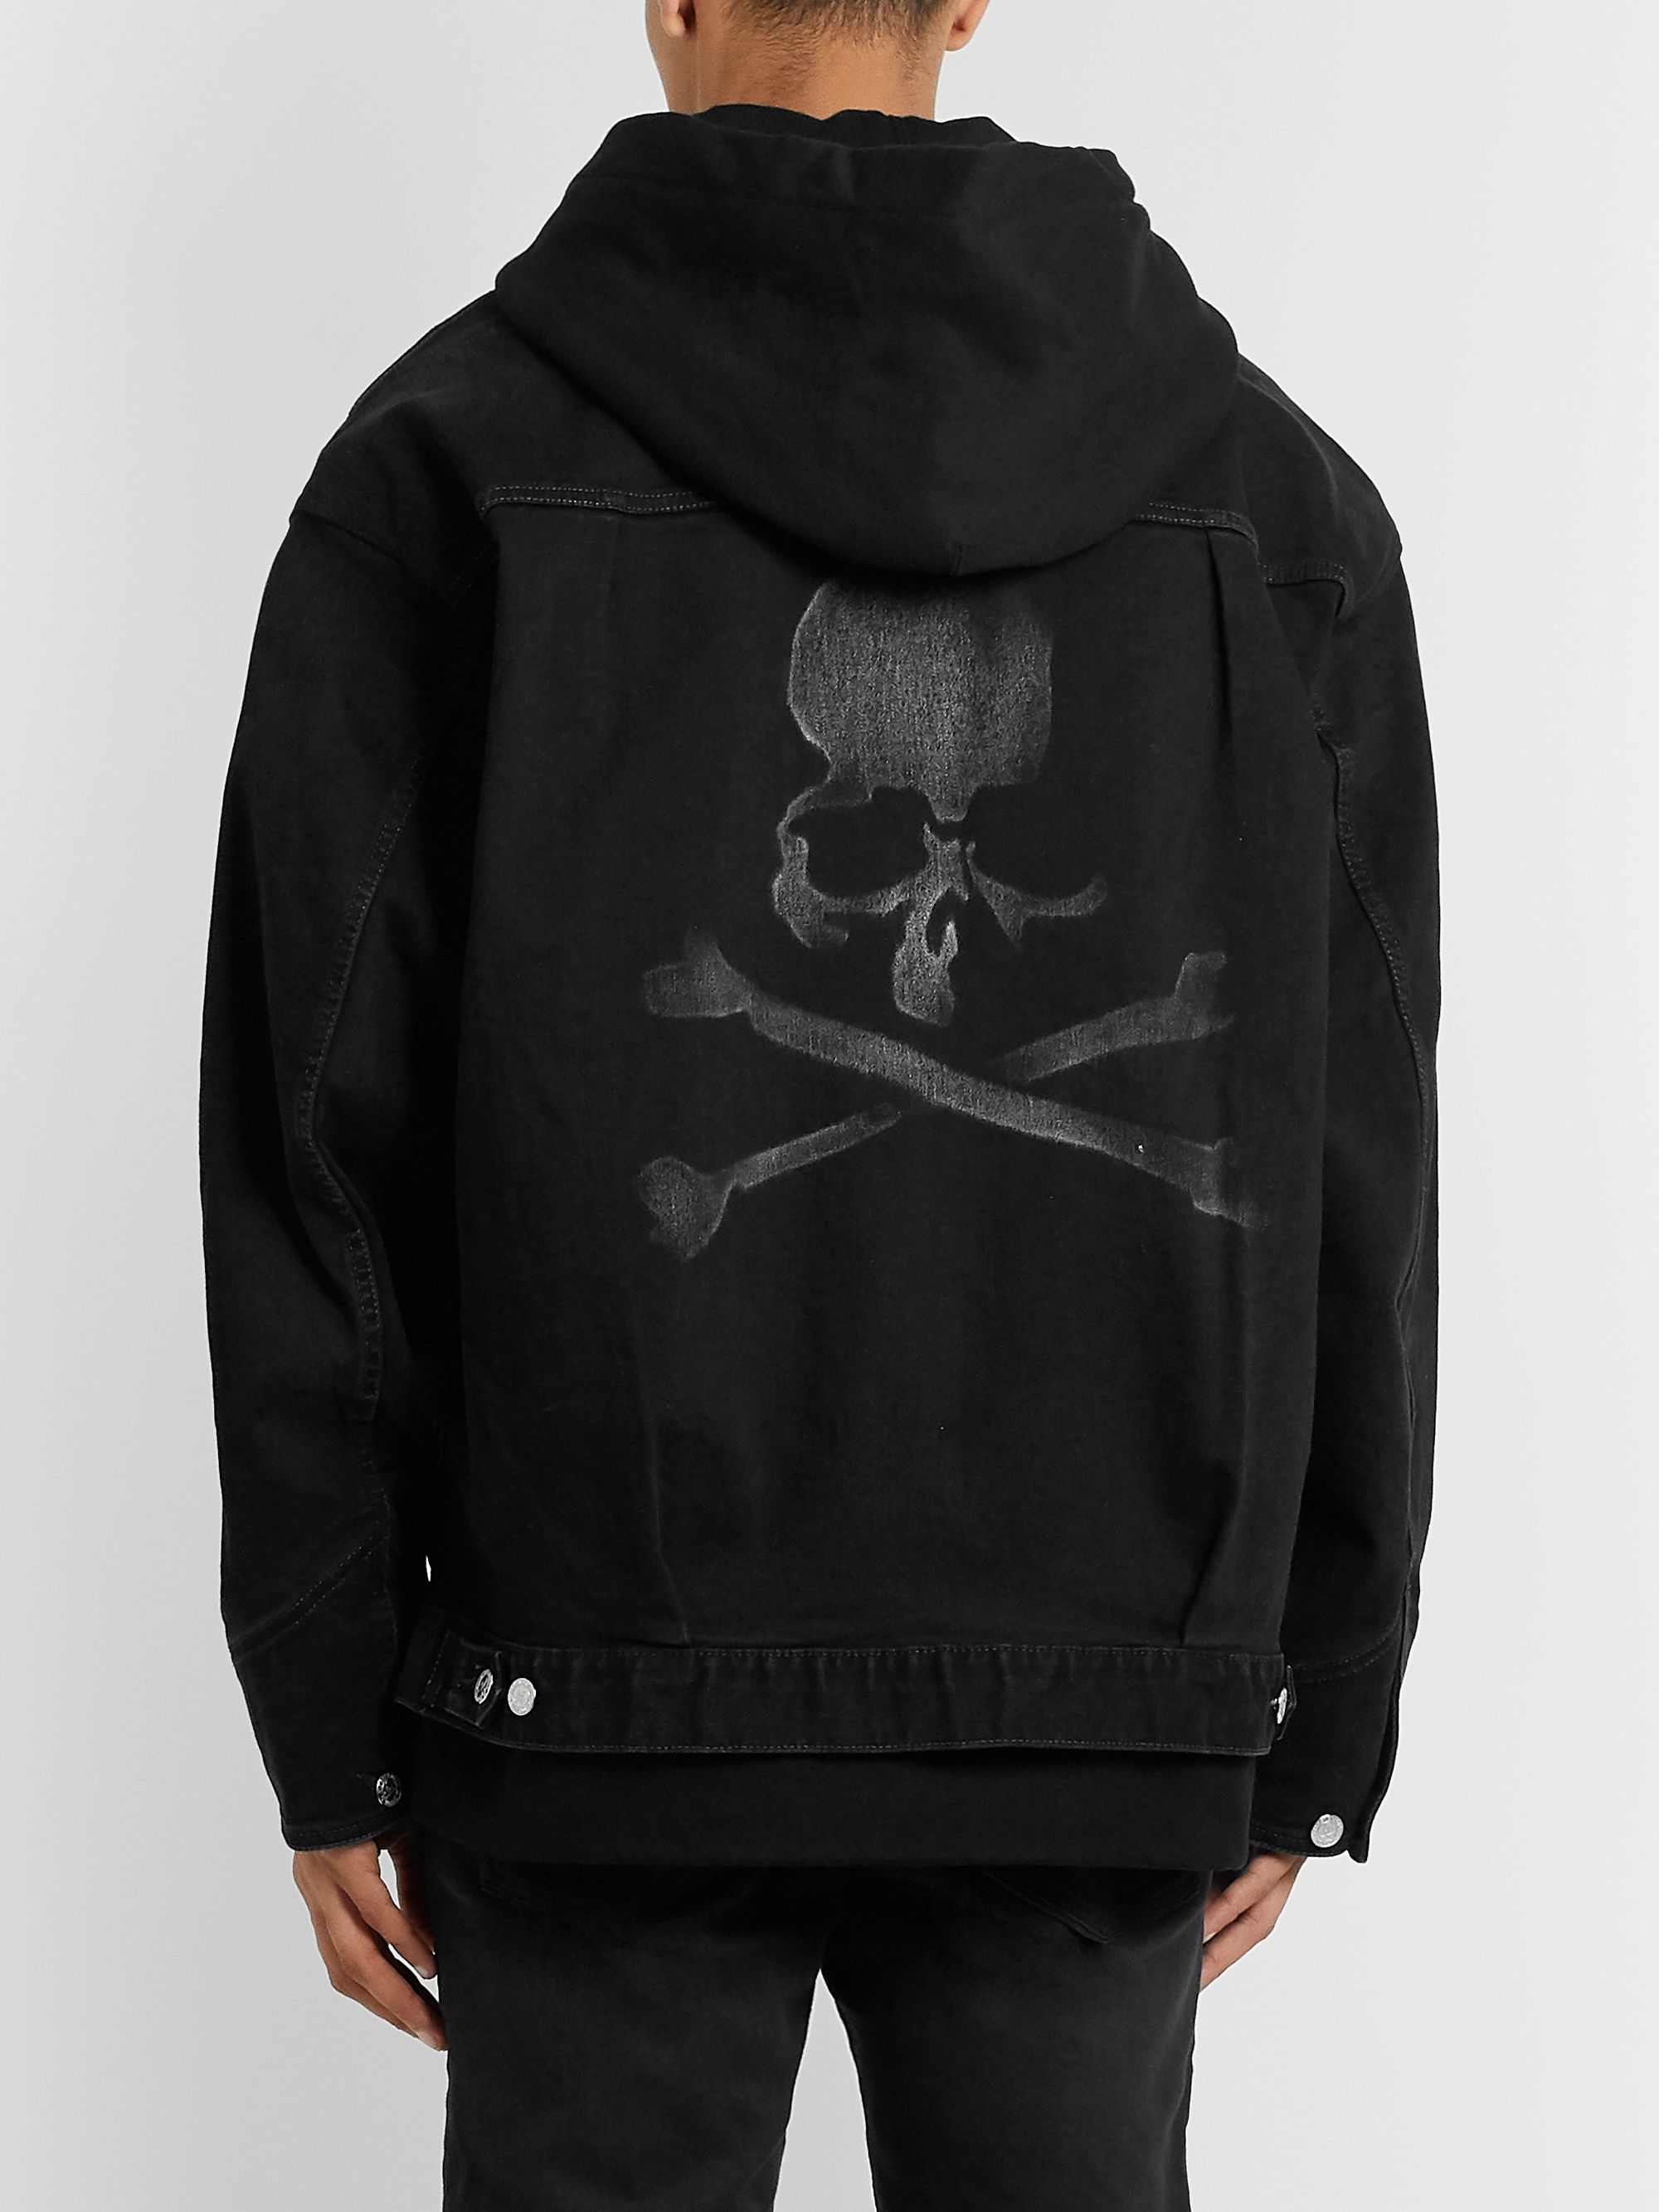 MASTERMIND WORLD Oversized Layered Printed Denim and Cotton-Jersey Hooded Jacket